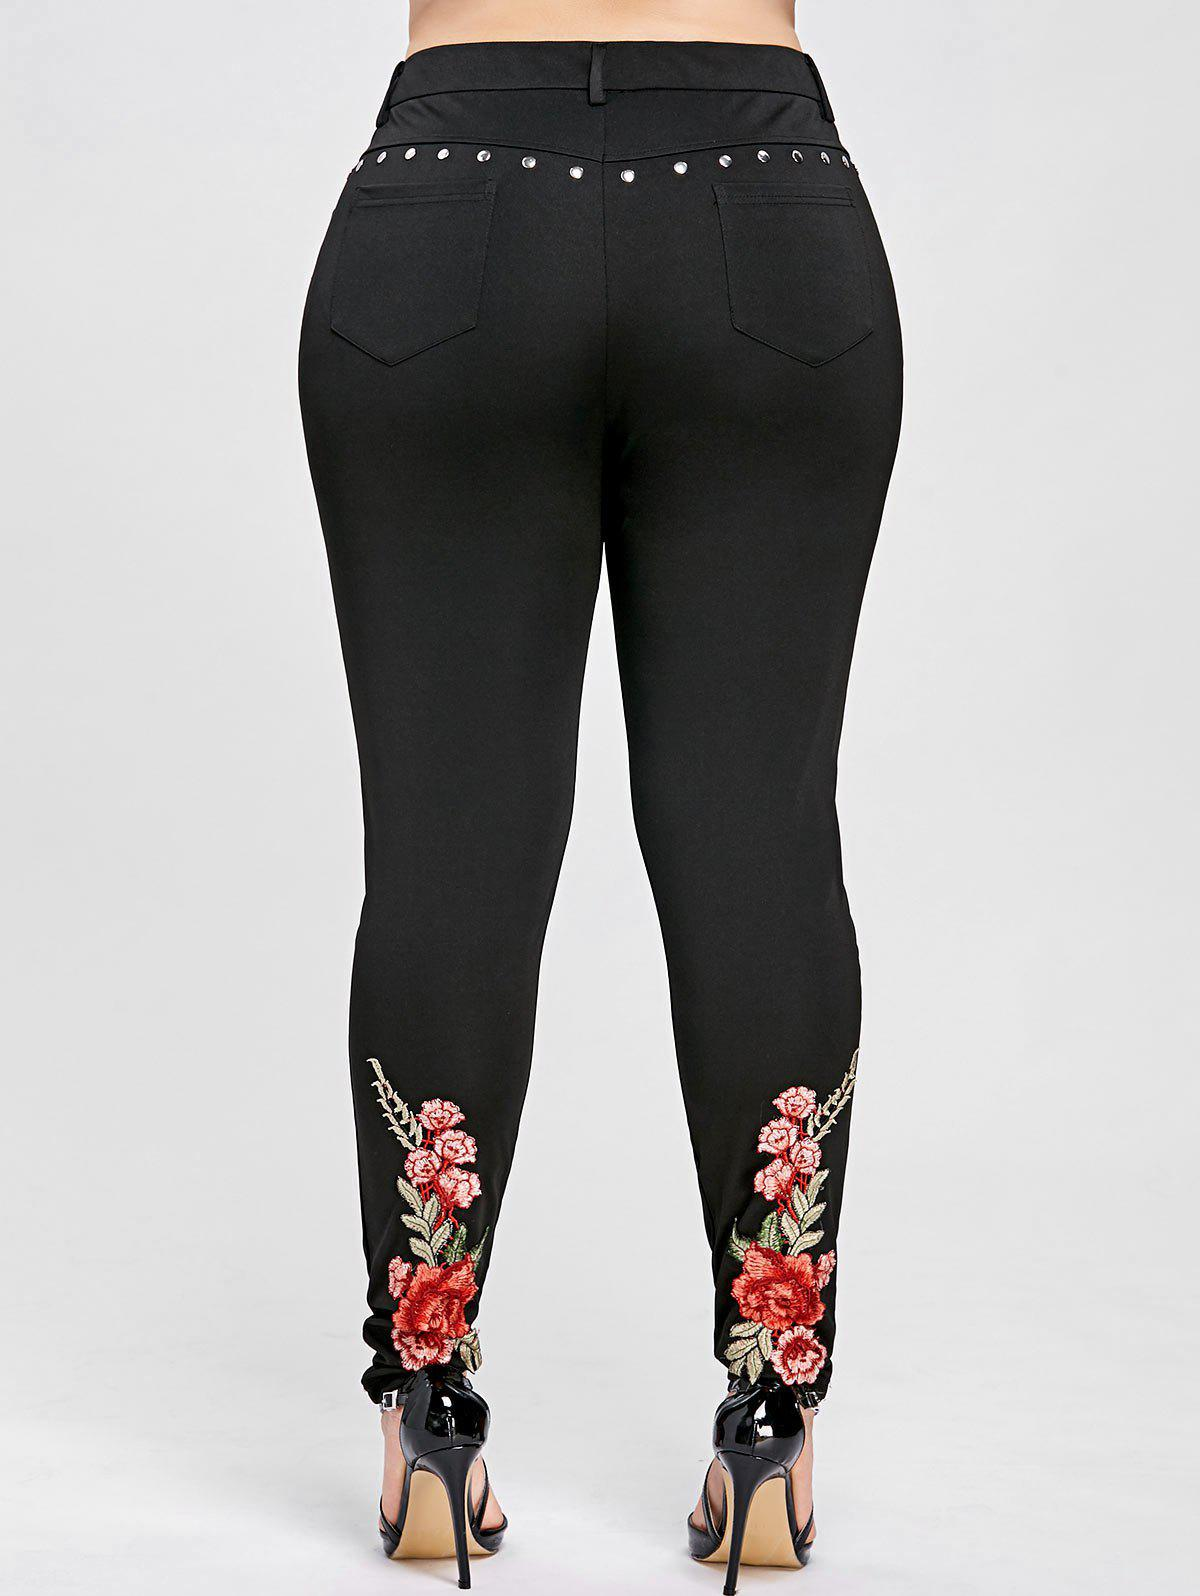 Floral Embroidered Rivet Plus Size Pencil Pants - BLACK XL